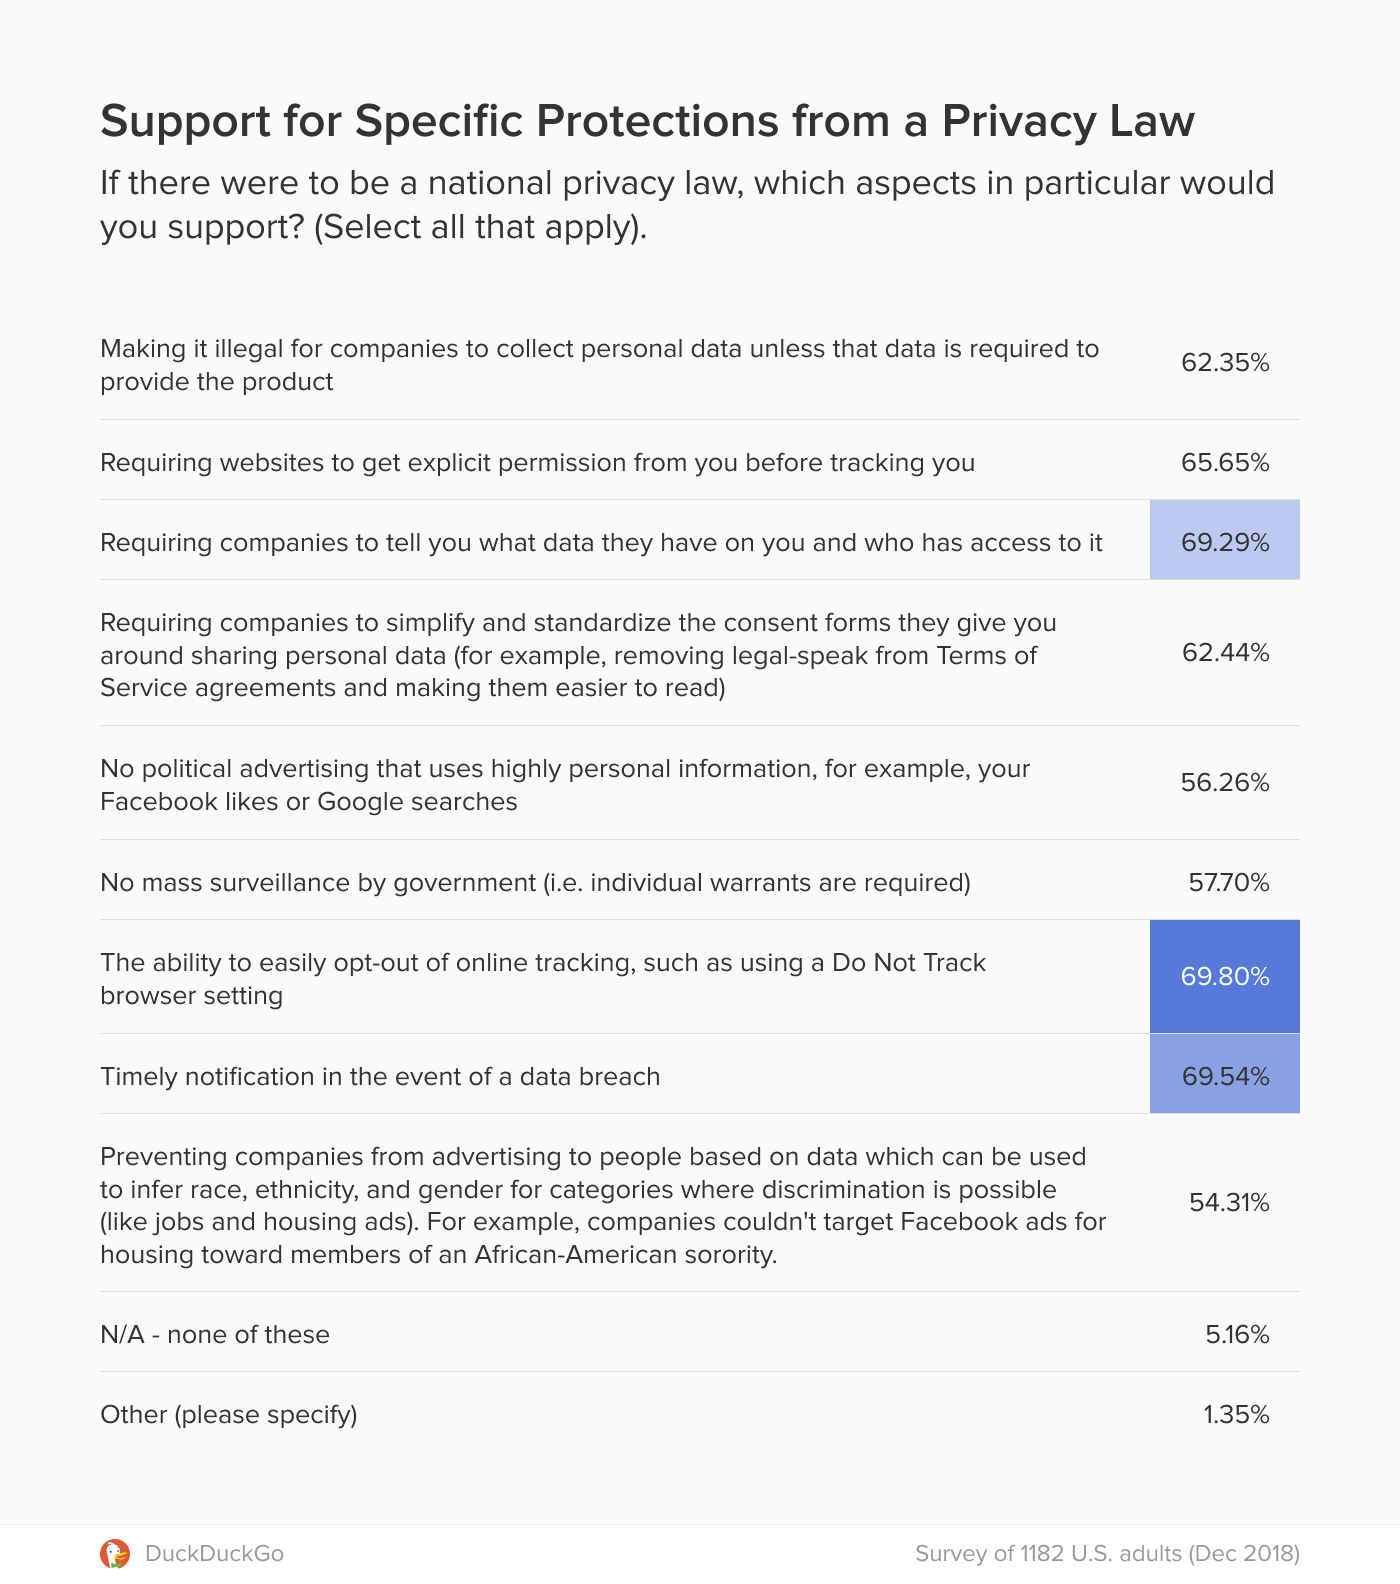 Chart showing support for different aspects of a potential national privacy law in the U.S.